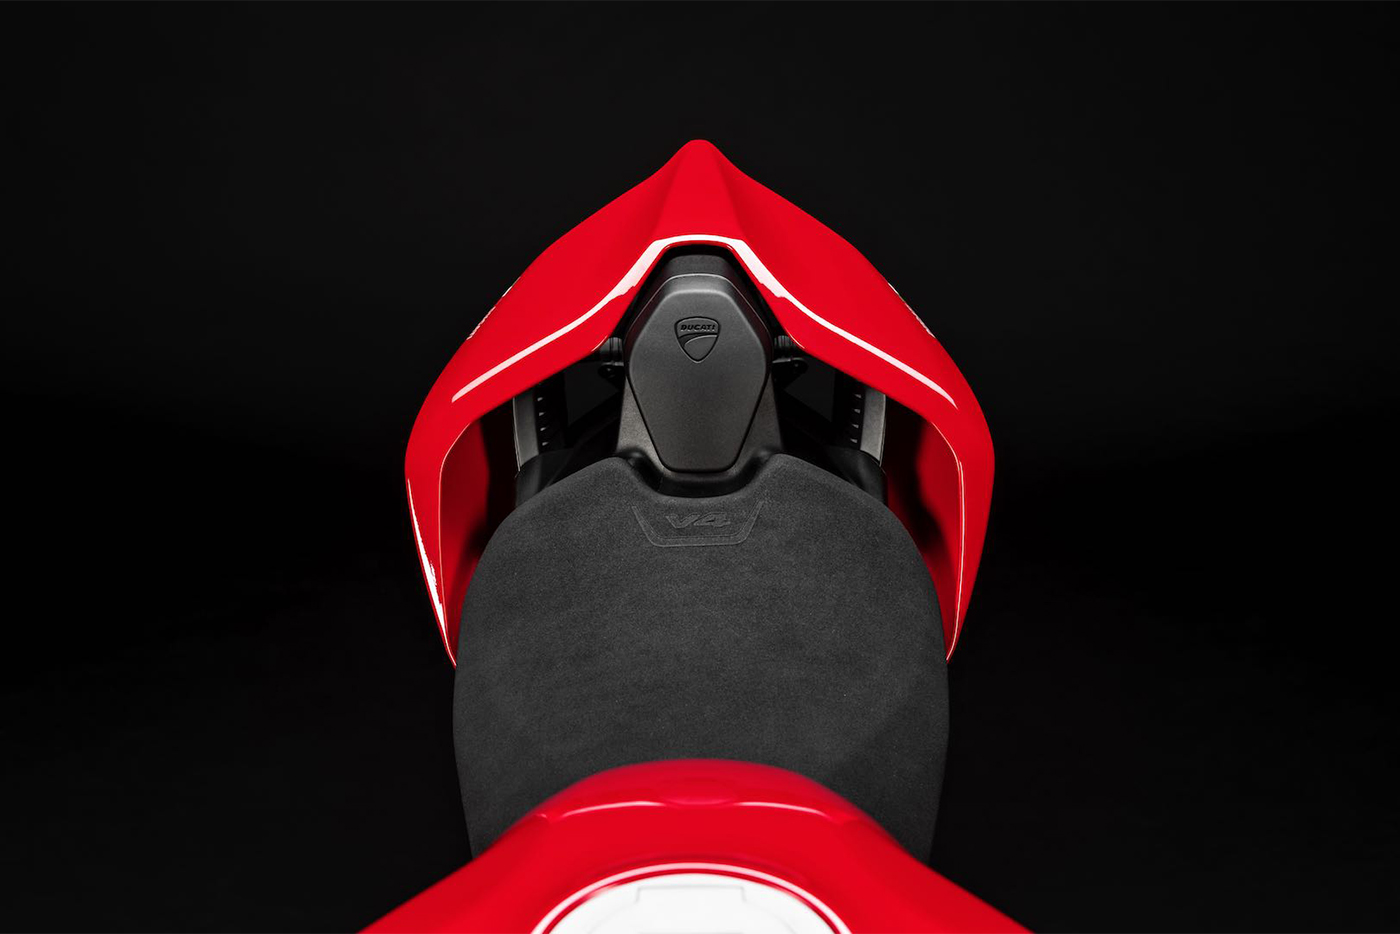 2020-ducati-panigale-v4-first-look-fast-facts-9.jpg